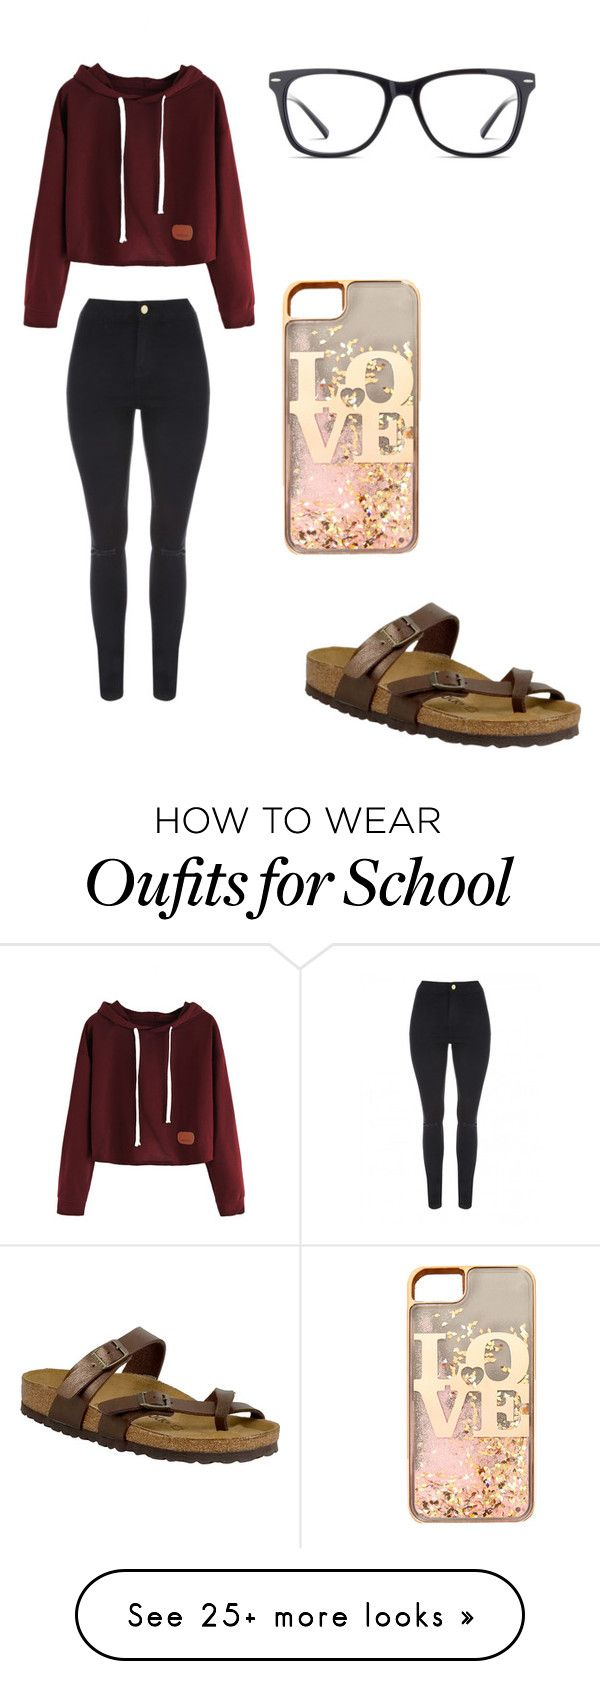 """""""School"""" by kennedy13-05 on Polyvore featuring Jane Norman, Birkenstock, GlassesUSA and claire's"""